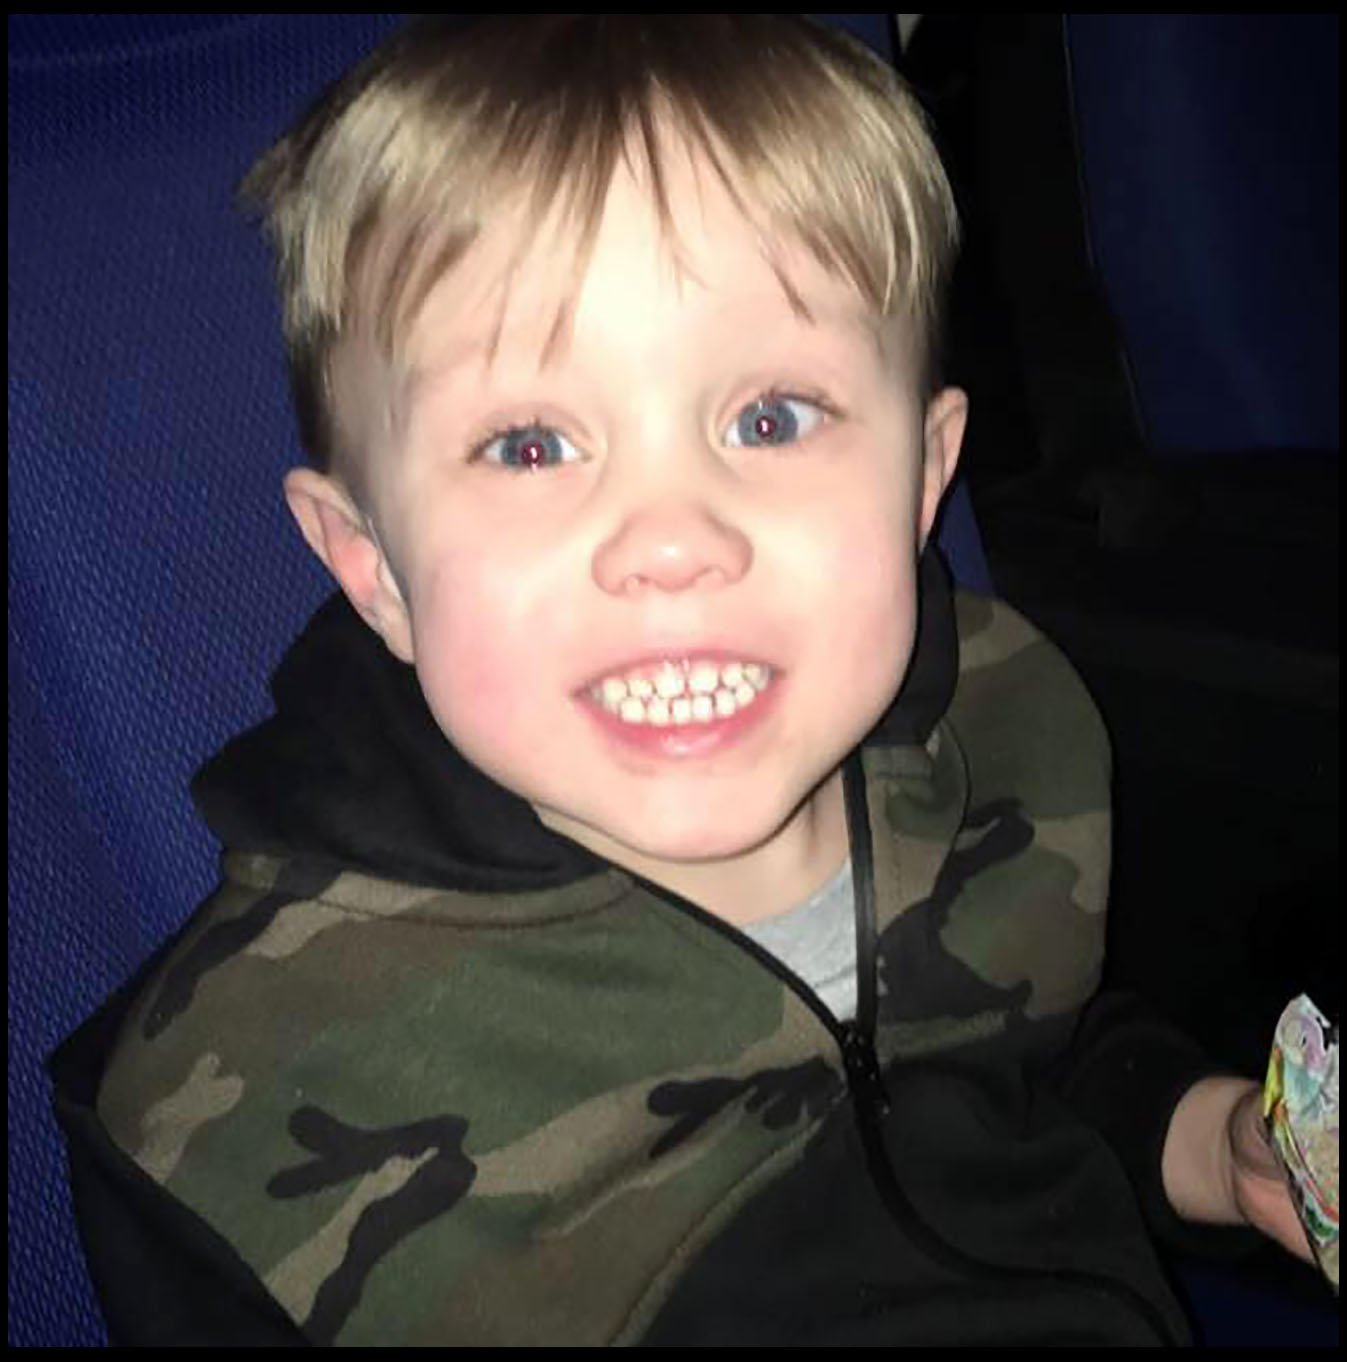 Little Jaiden died later in hospital due to head injuries suffered in the accident (Picture: PhilYeomans/BNPS)